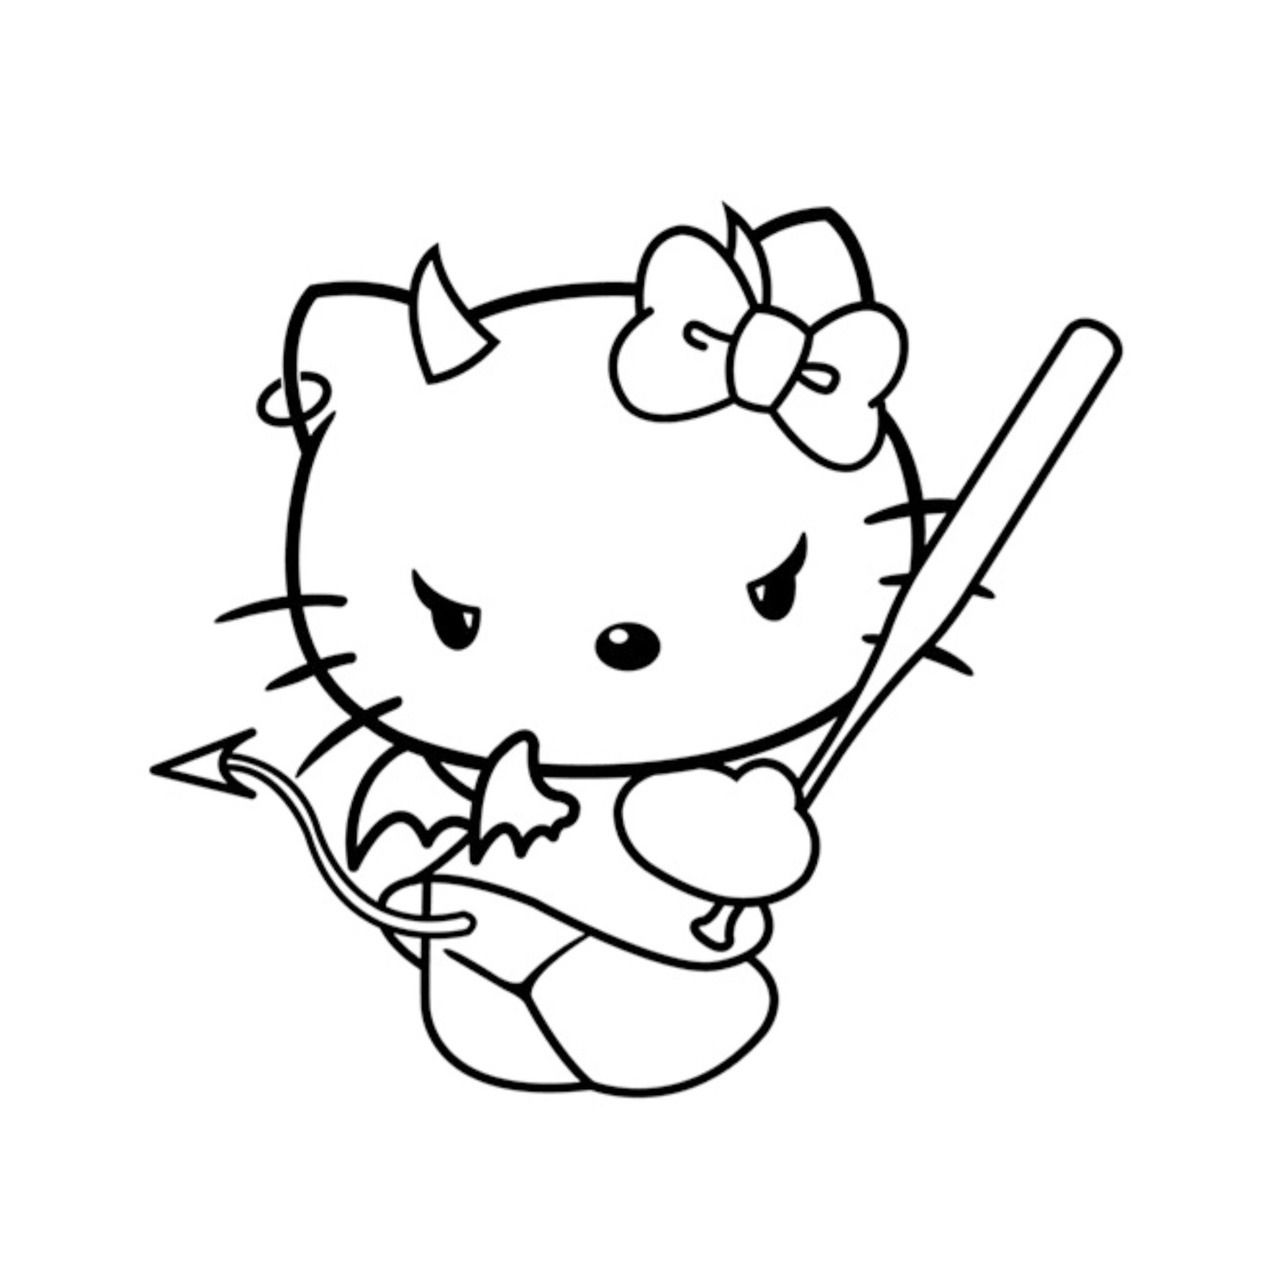 𝖎𝖈𝖔𝖓𝖘 | Hello kitty coloring, Hello kitty colouring pages ...